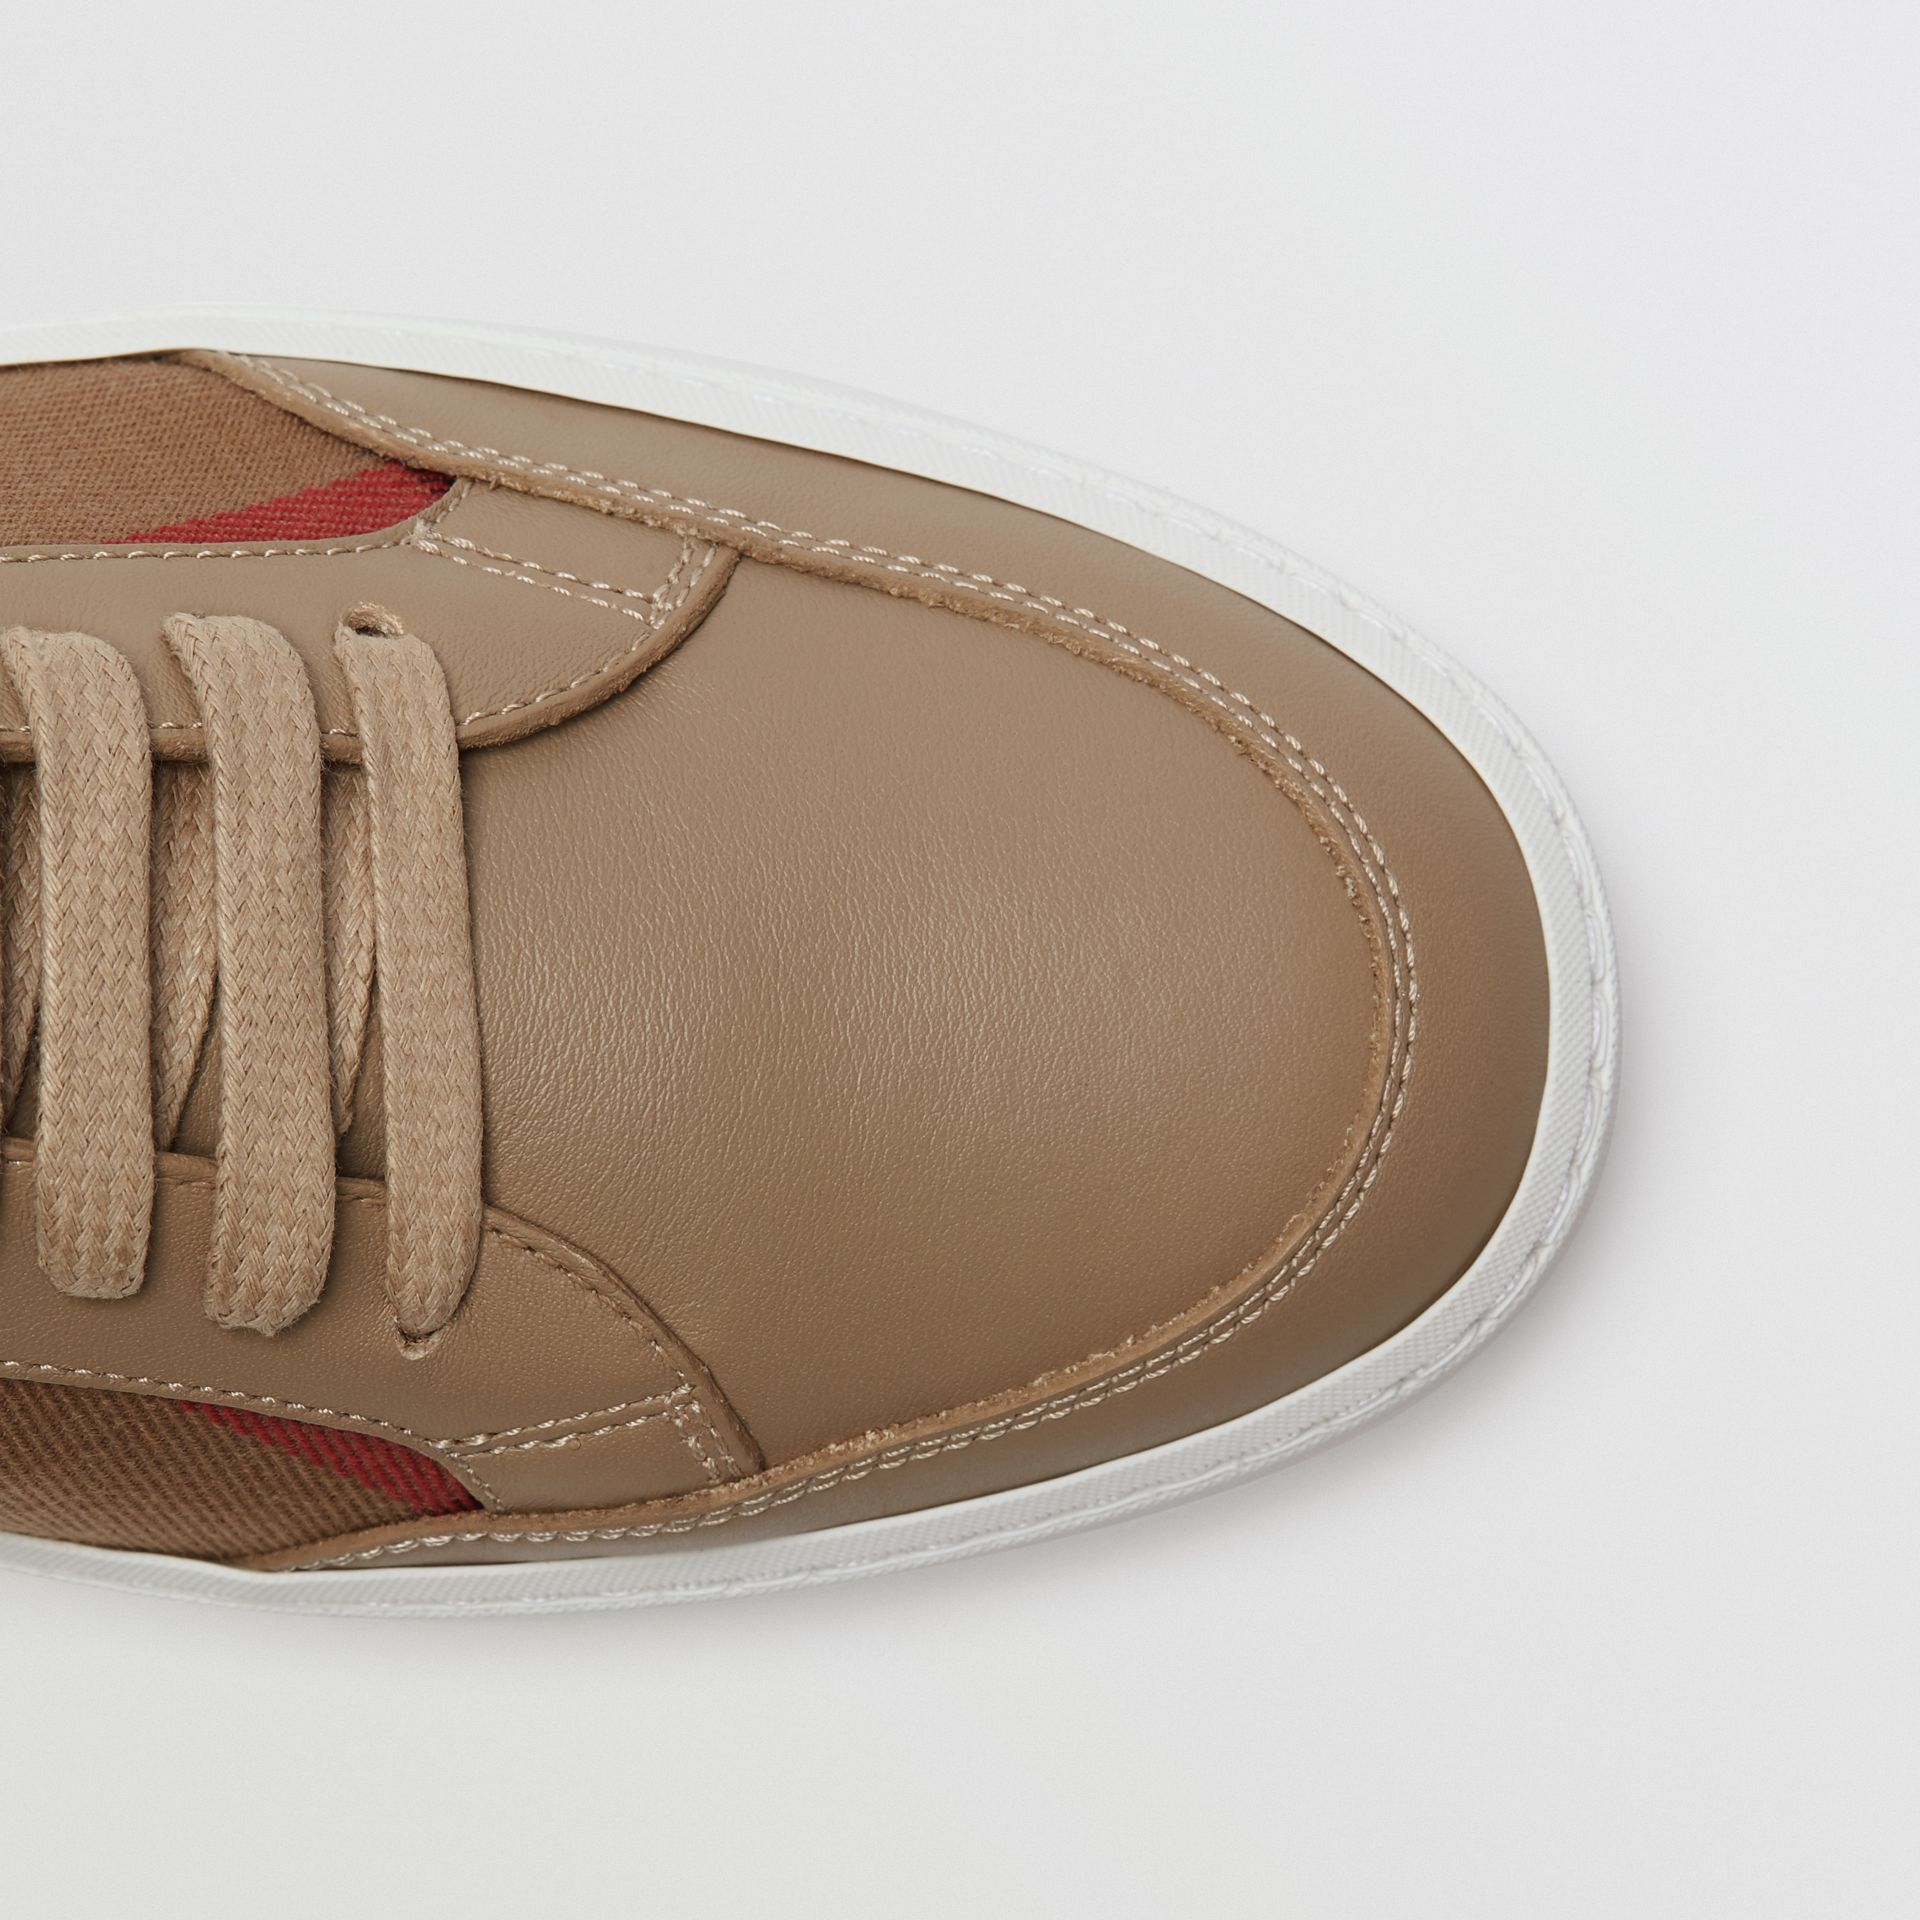 Check Detail Leather Sneakers in House Check/ Nude - Women | Burberry Australia - gallery image 1